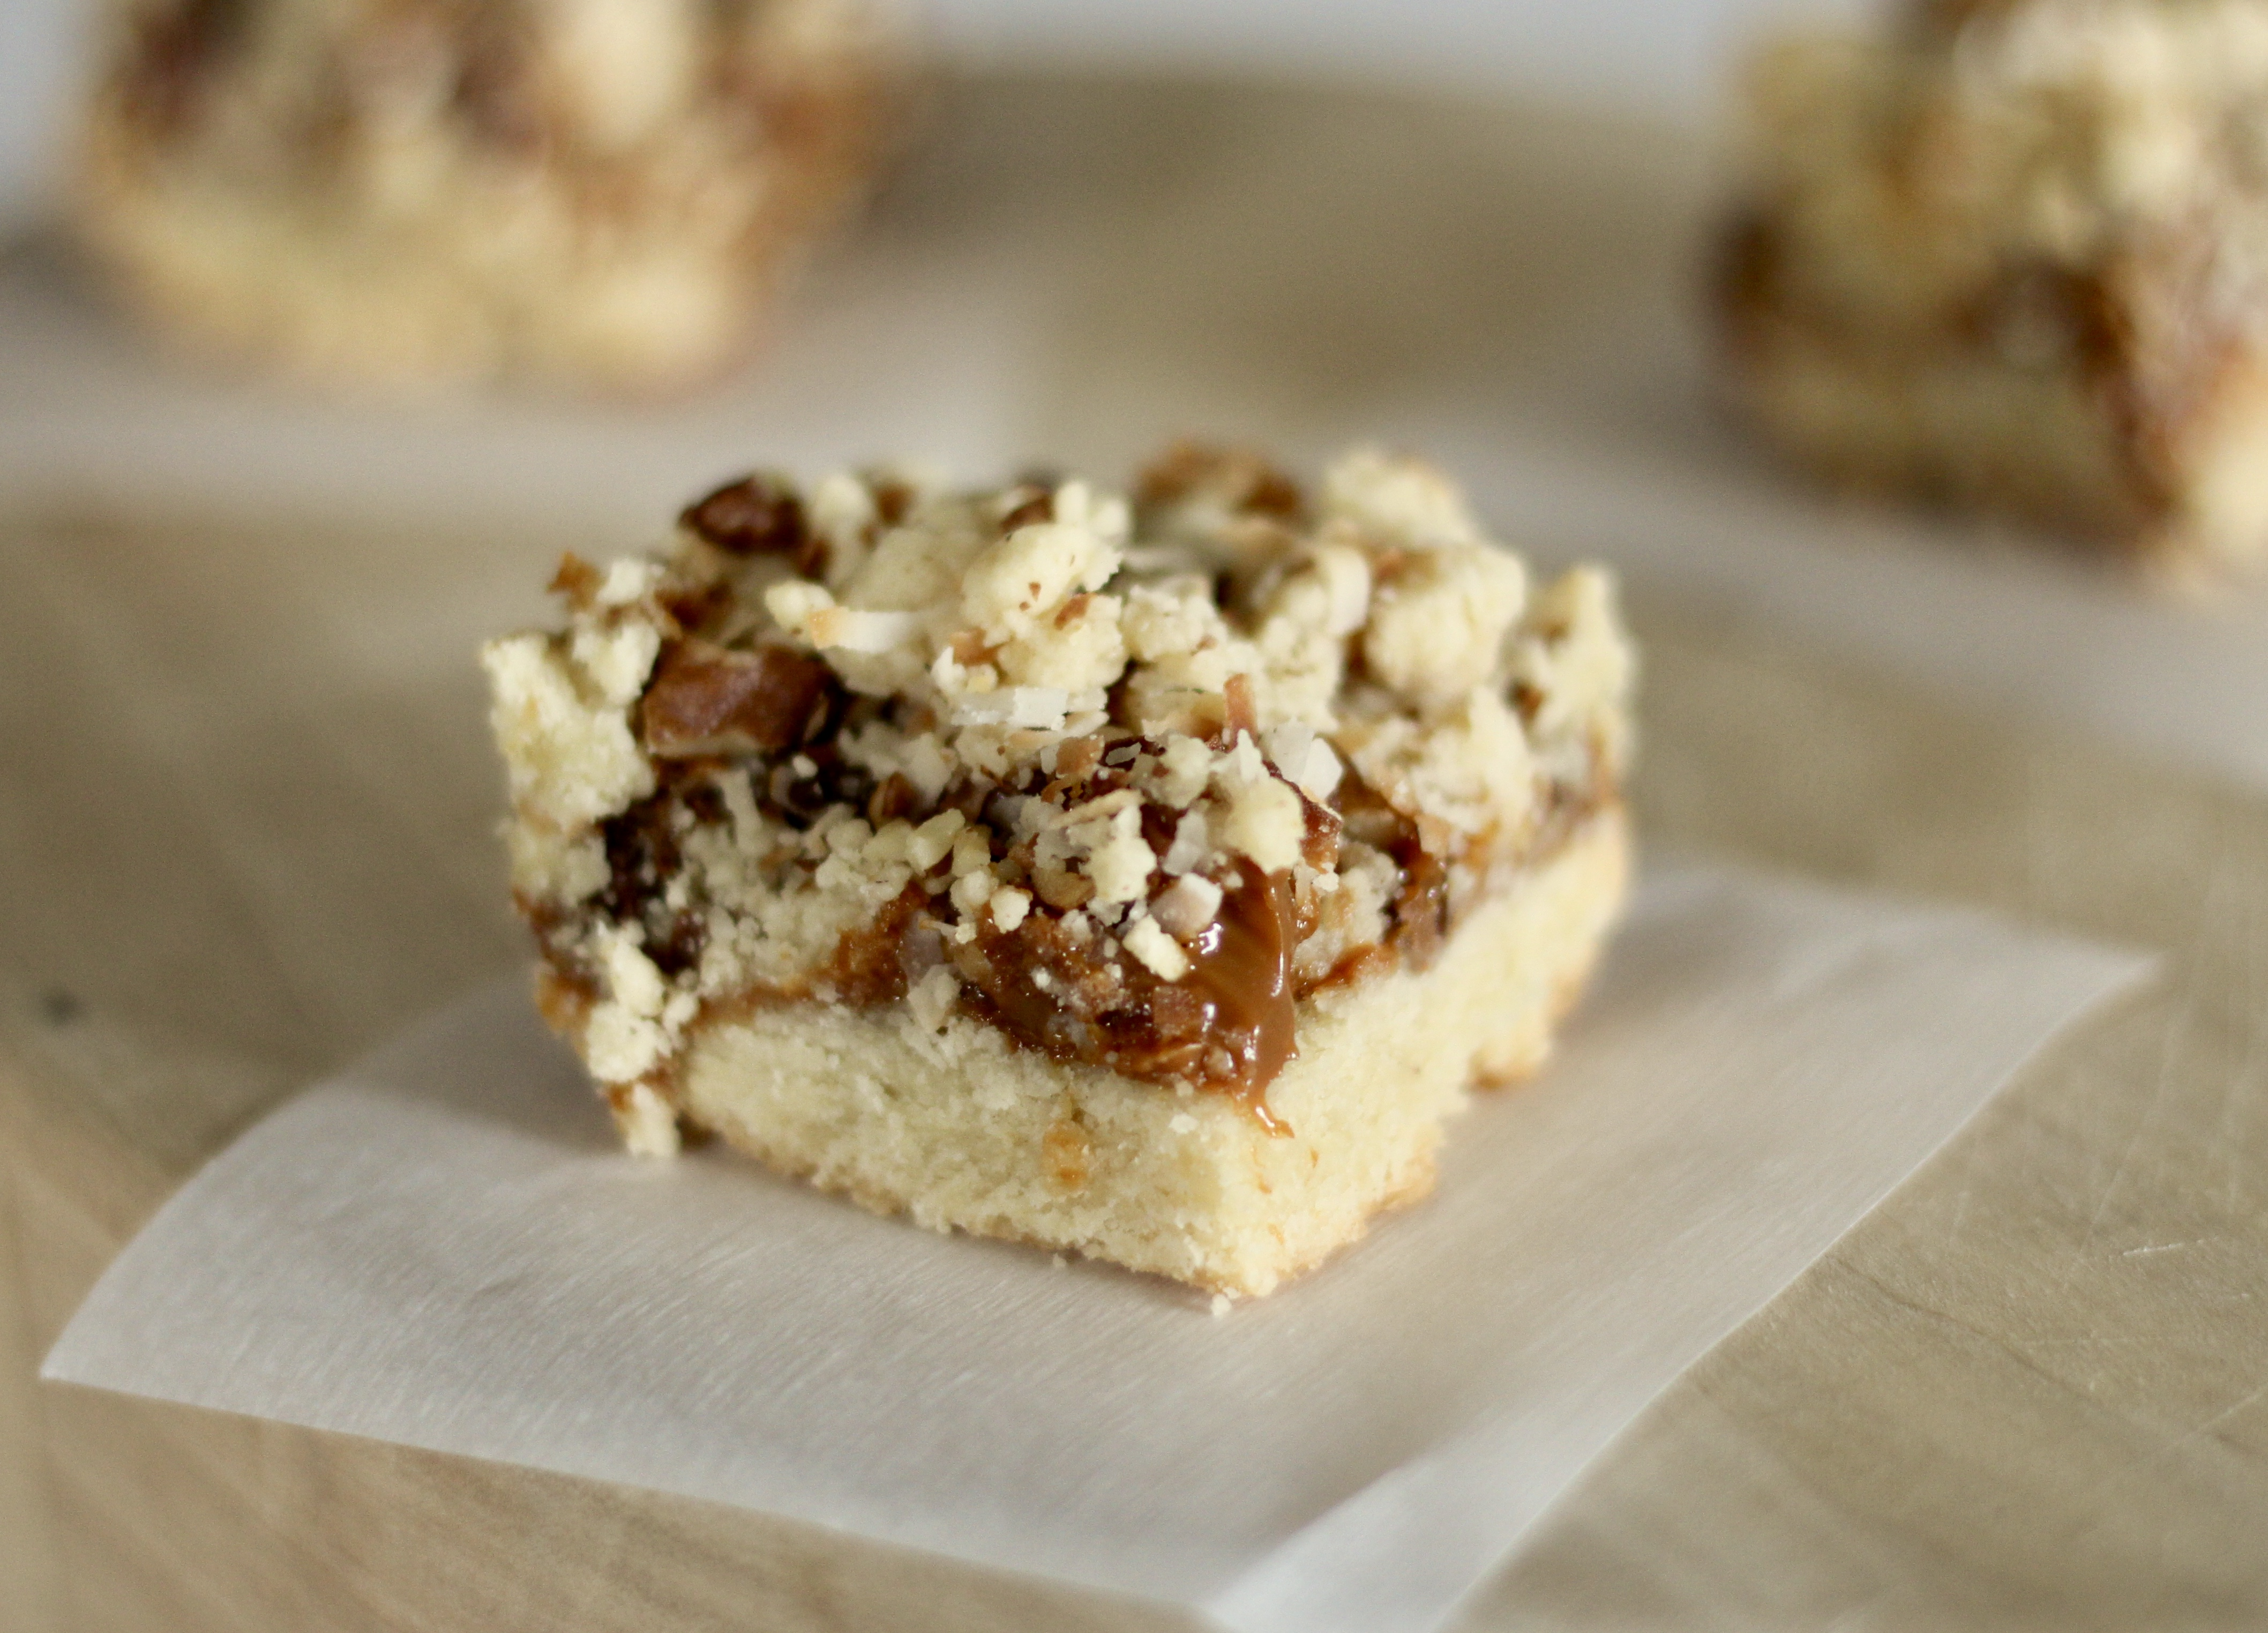 """""""A creamy center fills a shortbread-like buttery crust with a crumble-pecan coconut topping,"""" says Cori, the recipe submitter. """"This is a favorite with my family, boyfriend and at my workplace (a bakery!). Best served cool or room temperature."""""""